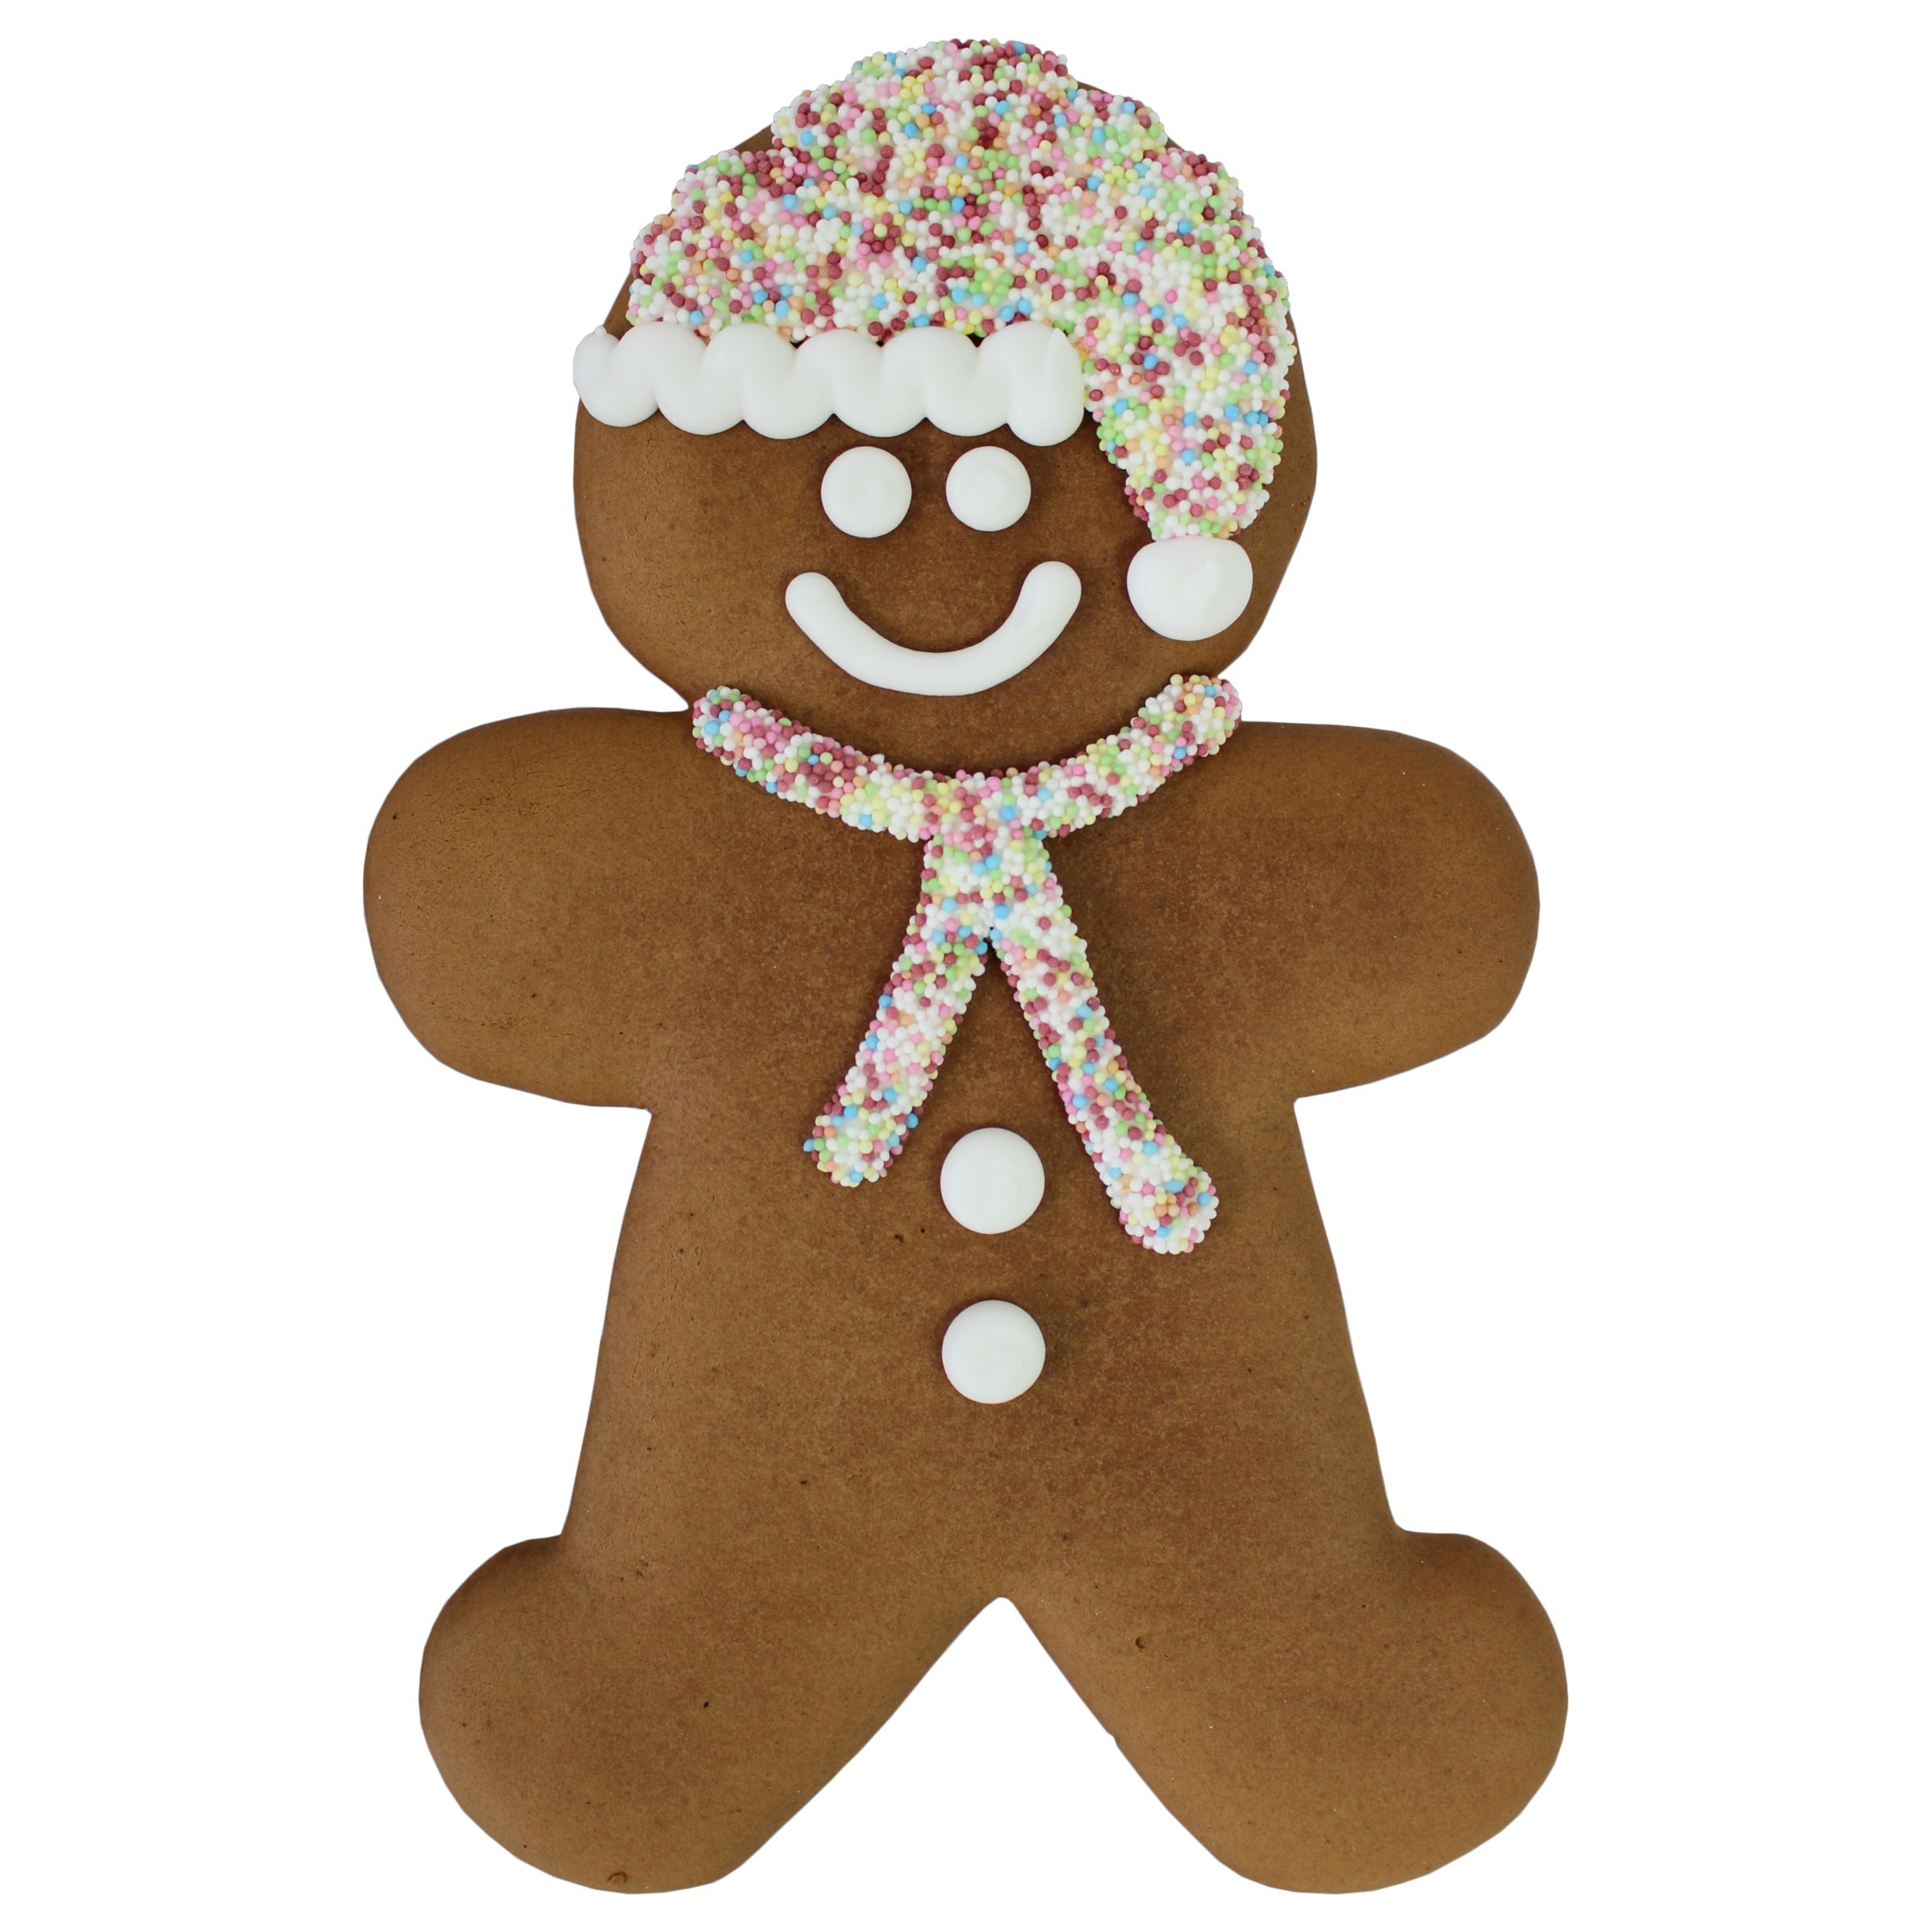 Pertzborn Large Gingerbread Man 180g